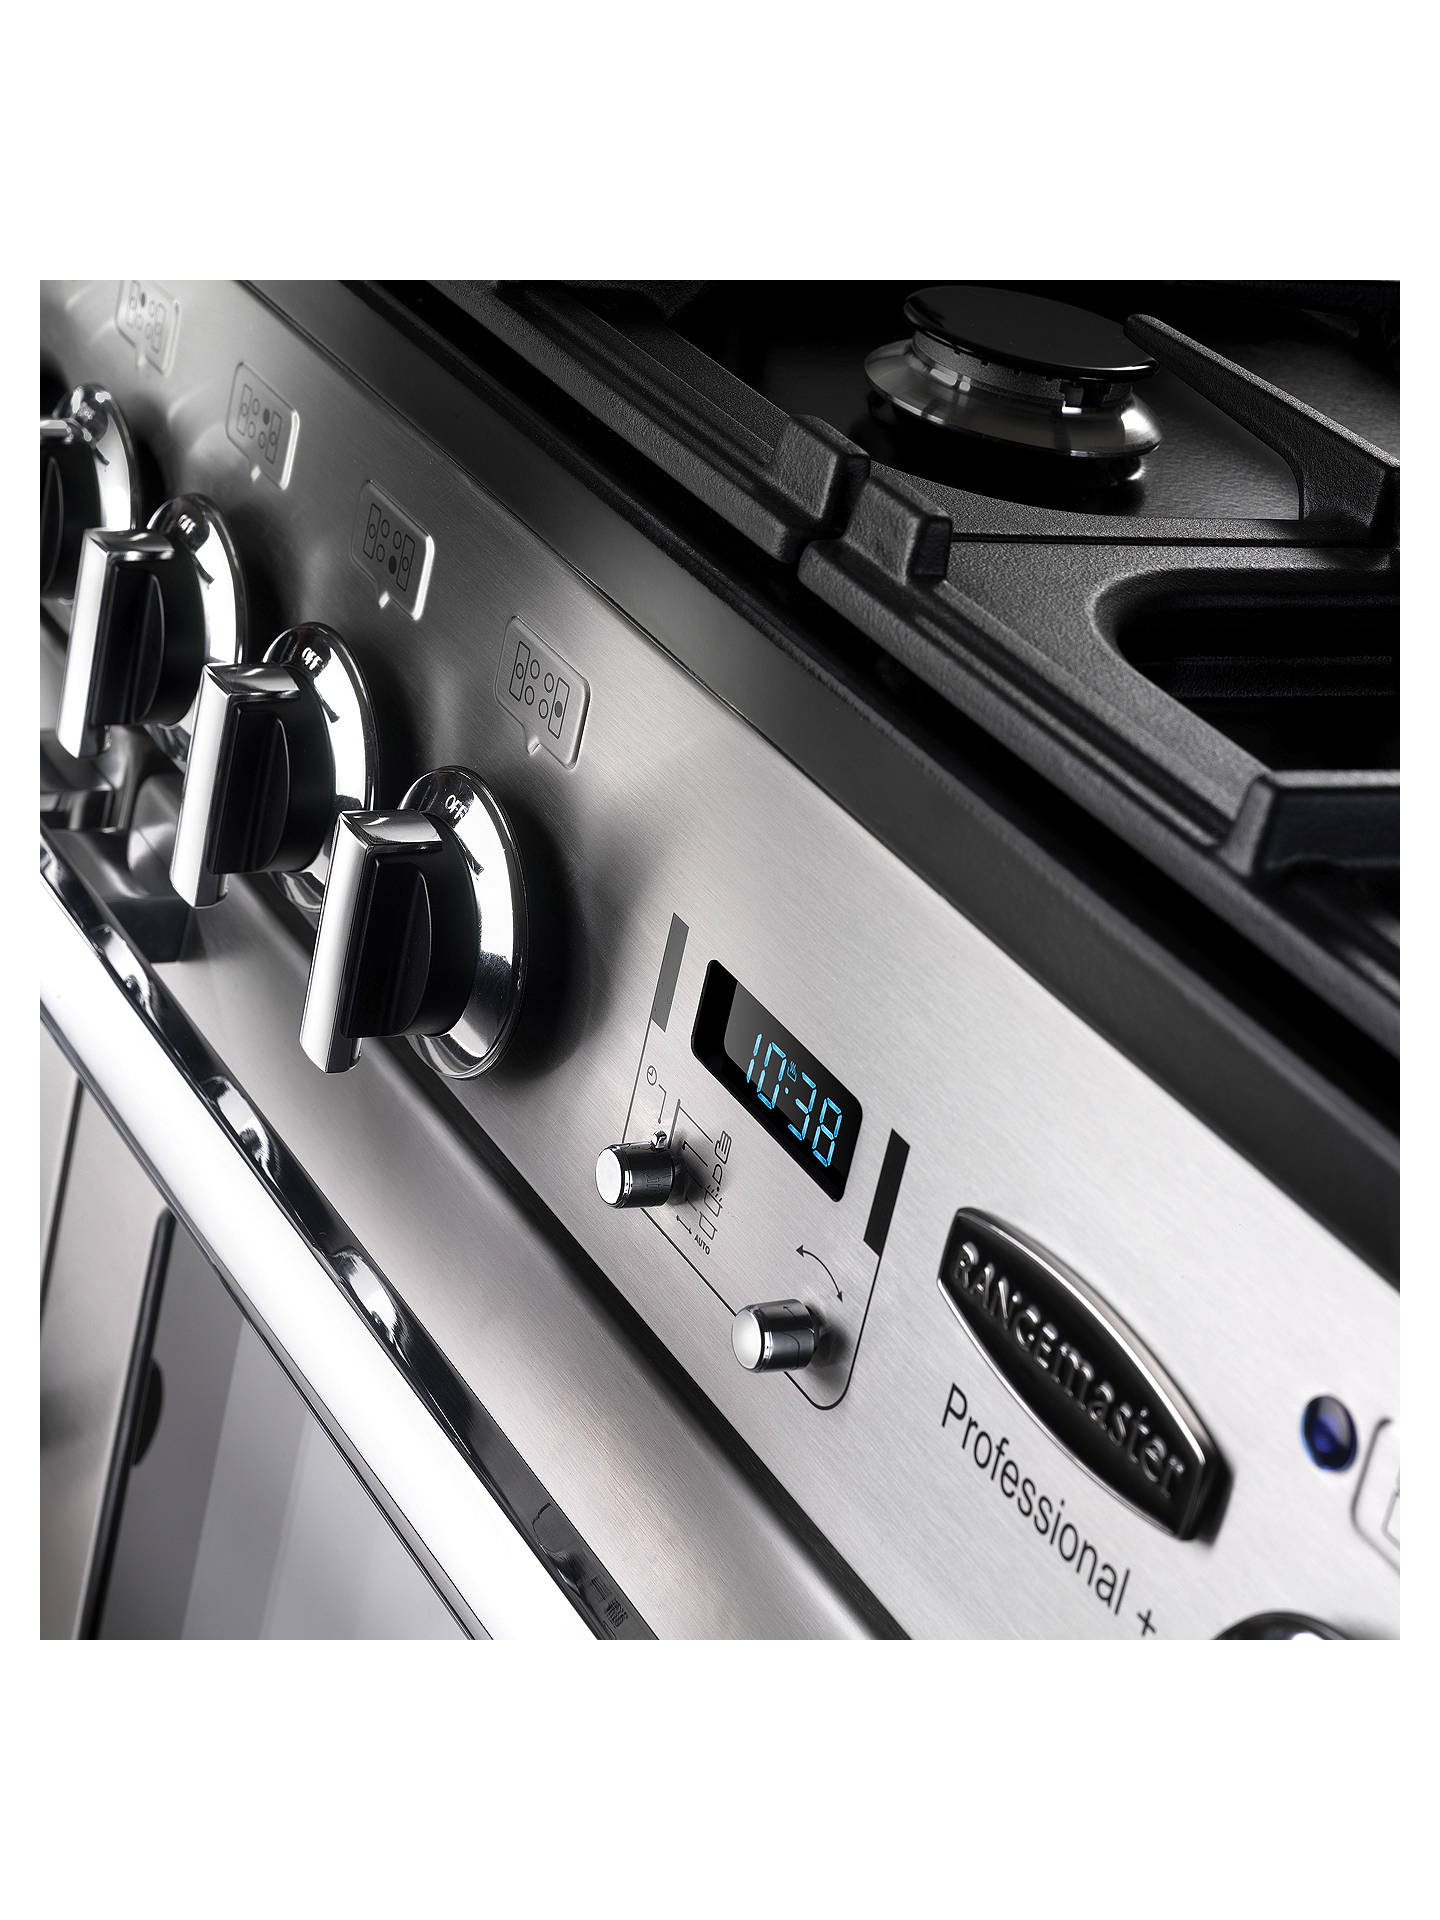 BuyRangemaster Professional Deluxe 110 Dual Fuel Range Cooker, Stainless Steel/Chrome Trim Online at johnlewis.com